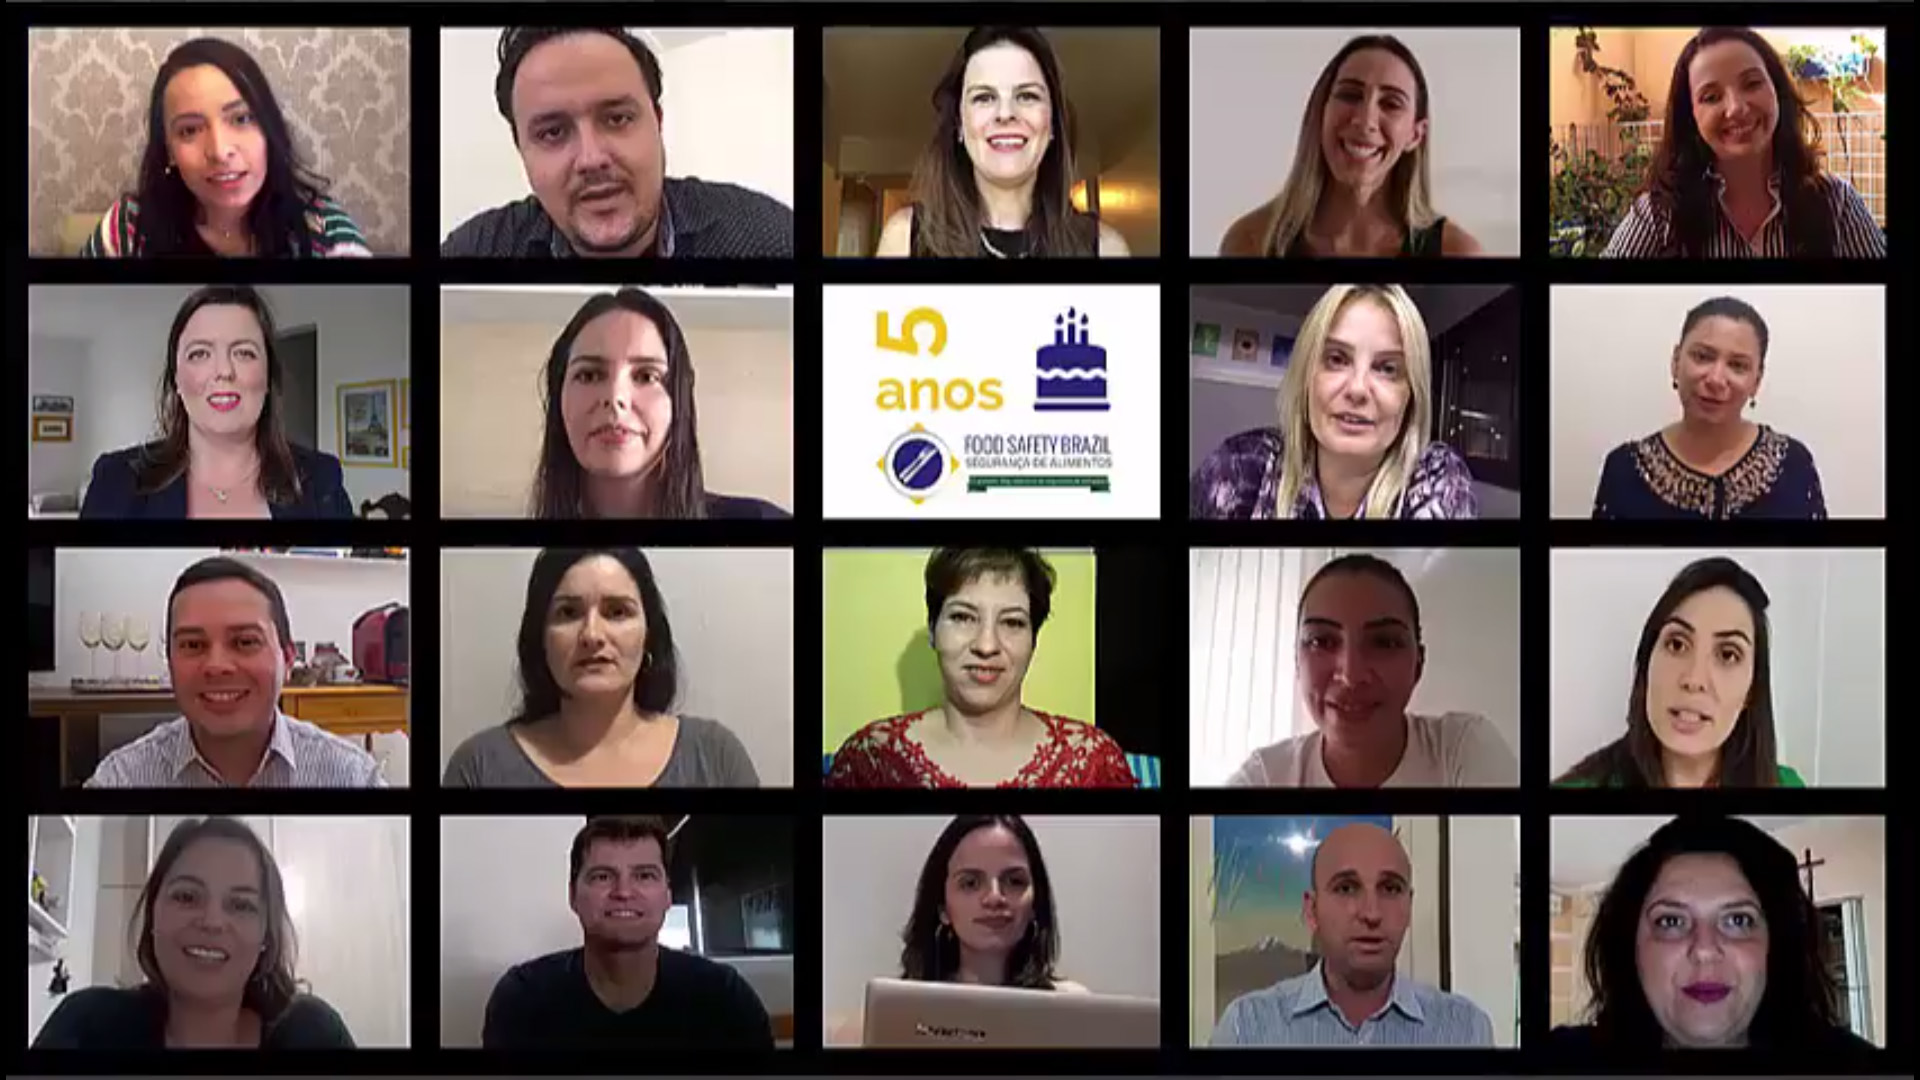 featured image Vídeo celebra 5 anos do Food Safety Brazil